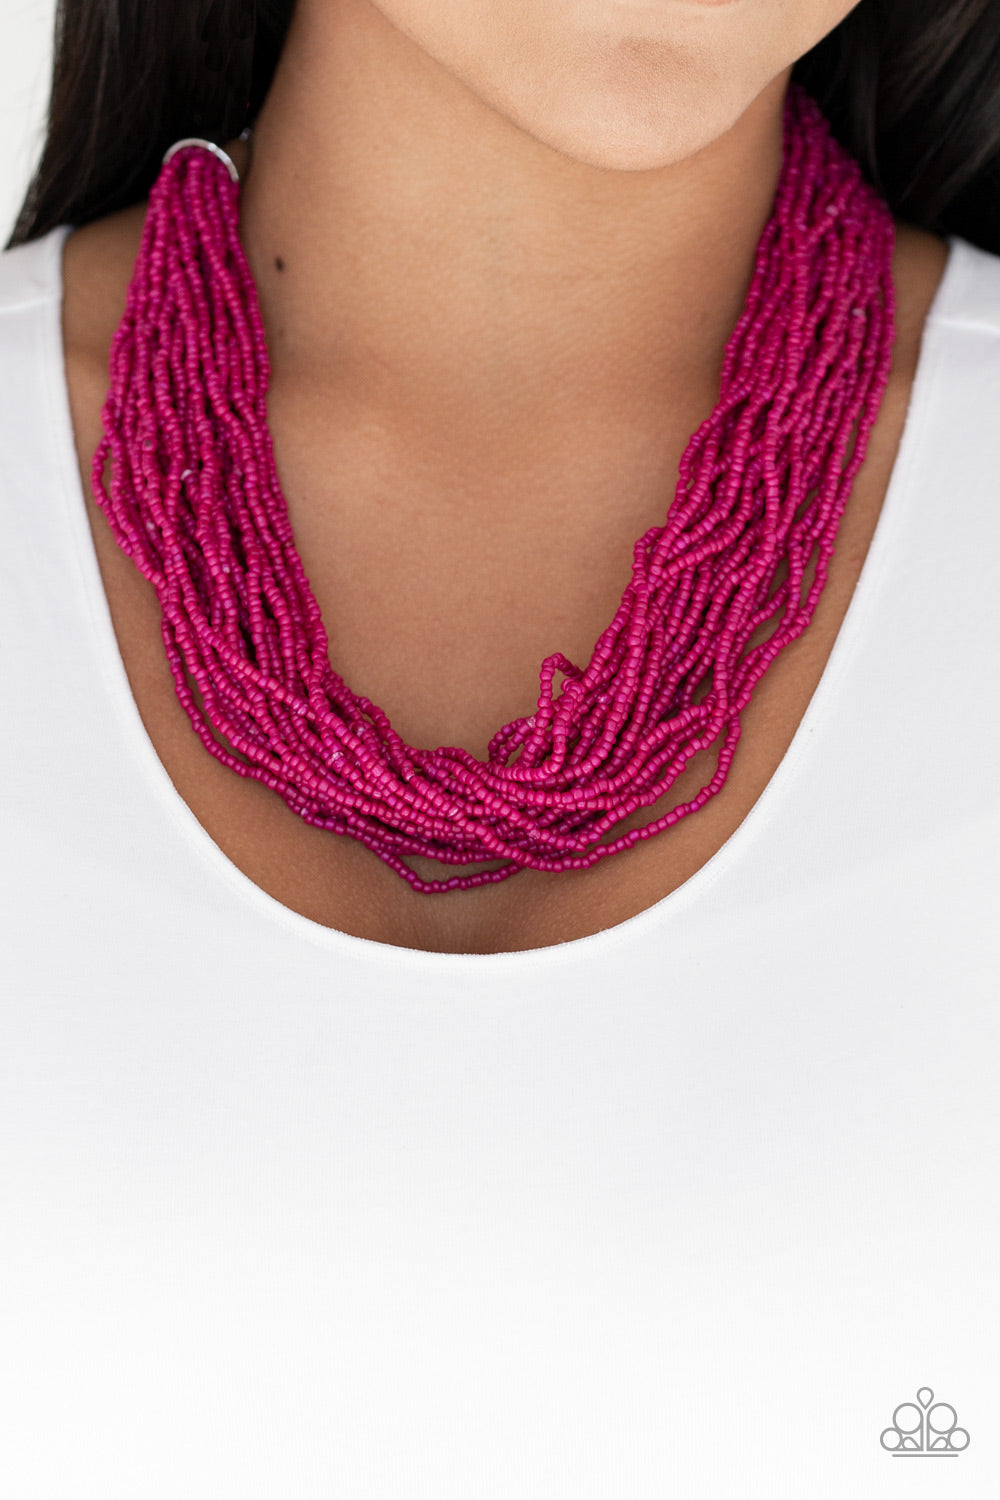 The Show Must CONGO On - Pink Necklace - SavvyChicksJewelry